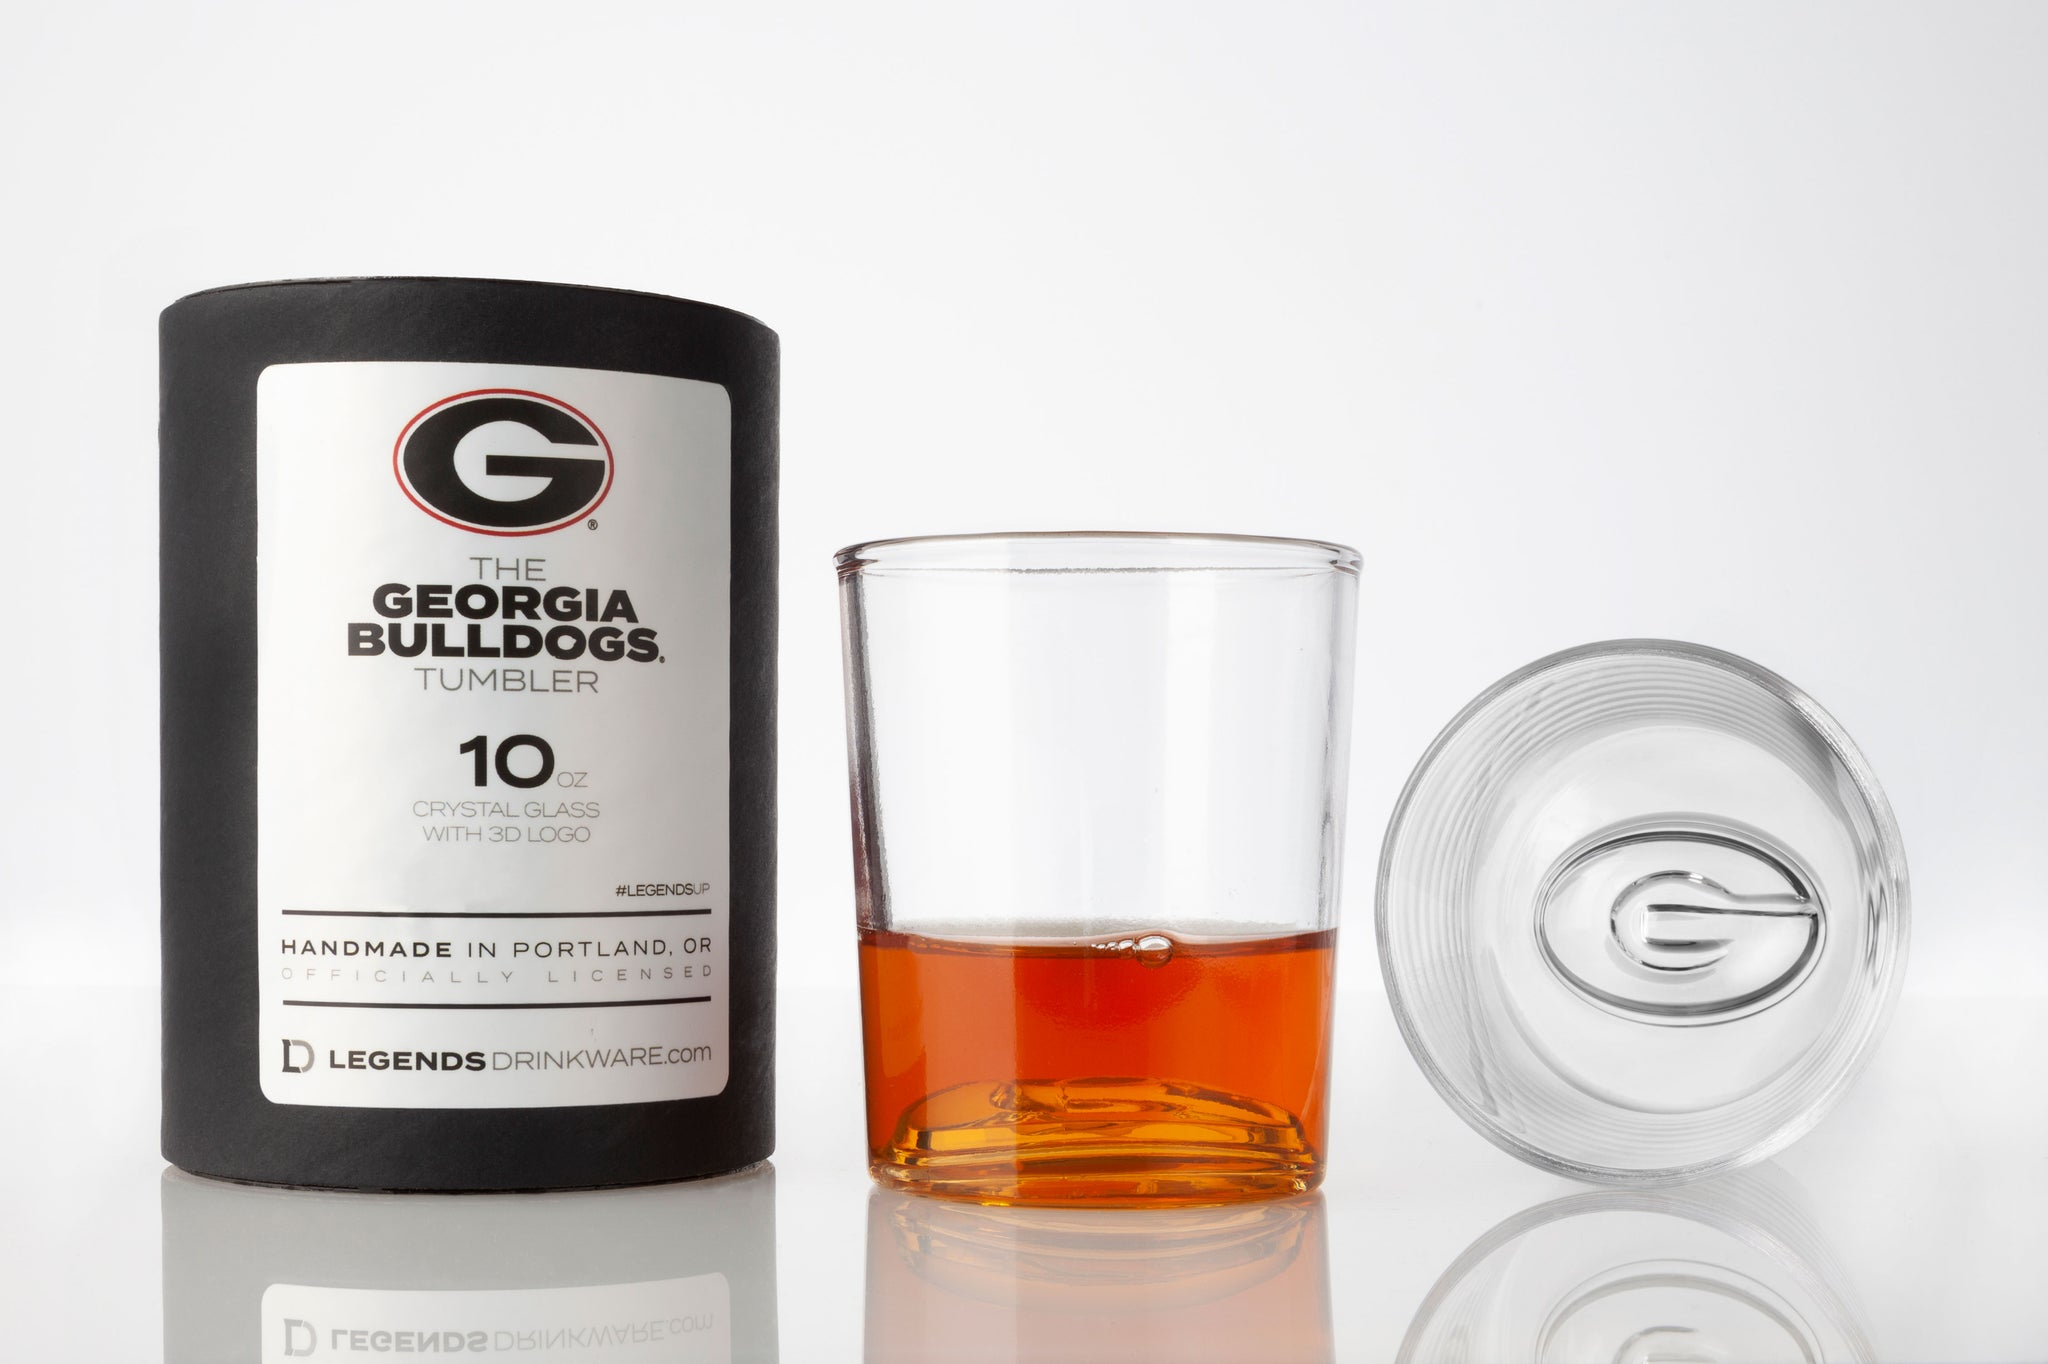 The Georgia Bulldogs 10 oz Tumbler